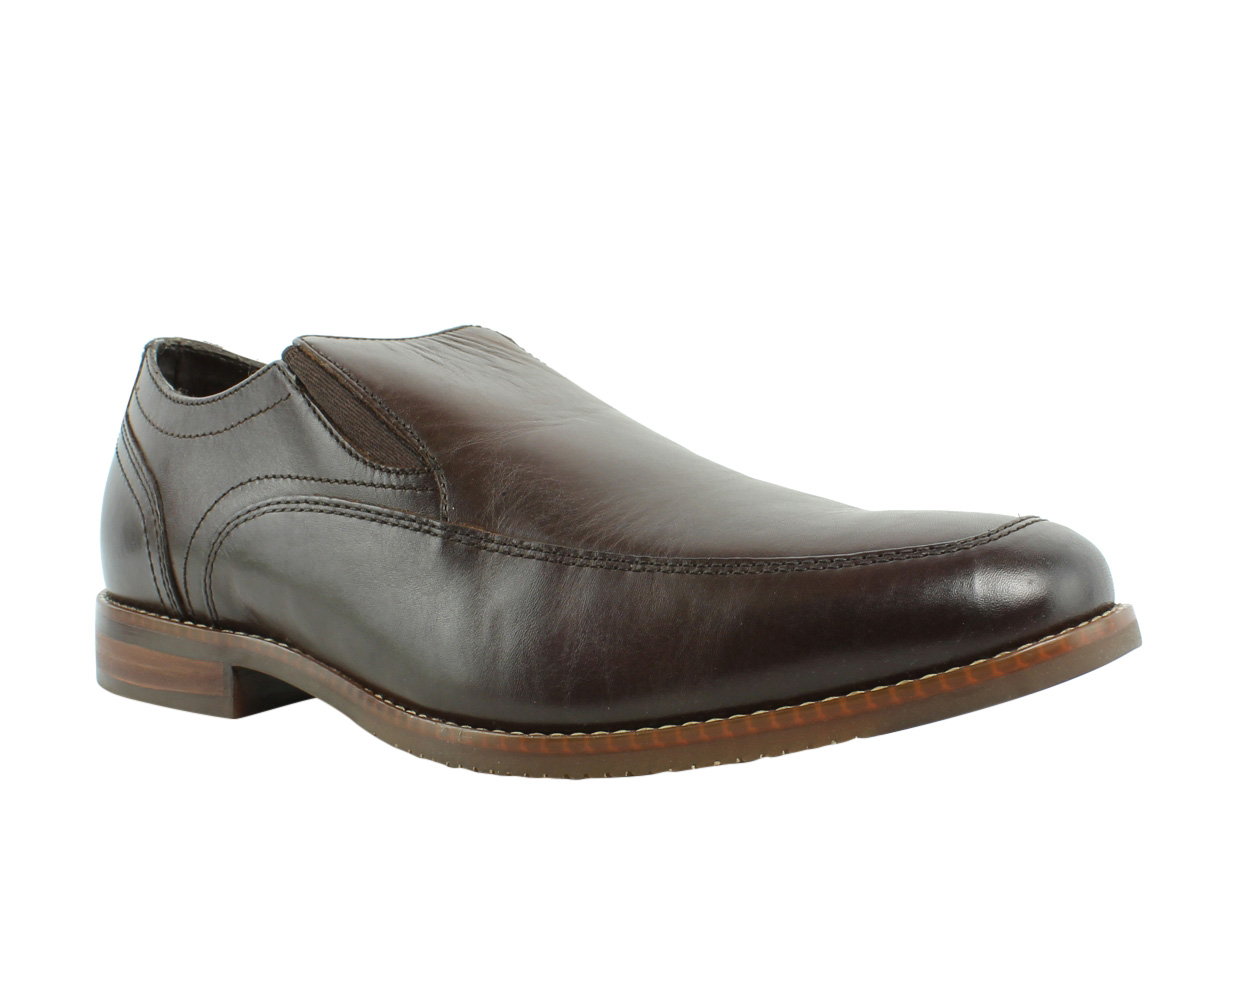 Rockport M77049 Brown Leather Loafers & Slip Ons Mens Casual Shoes Size 9 New by Rockport